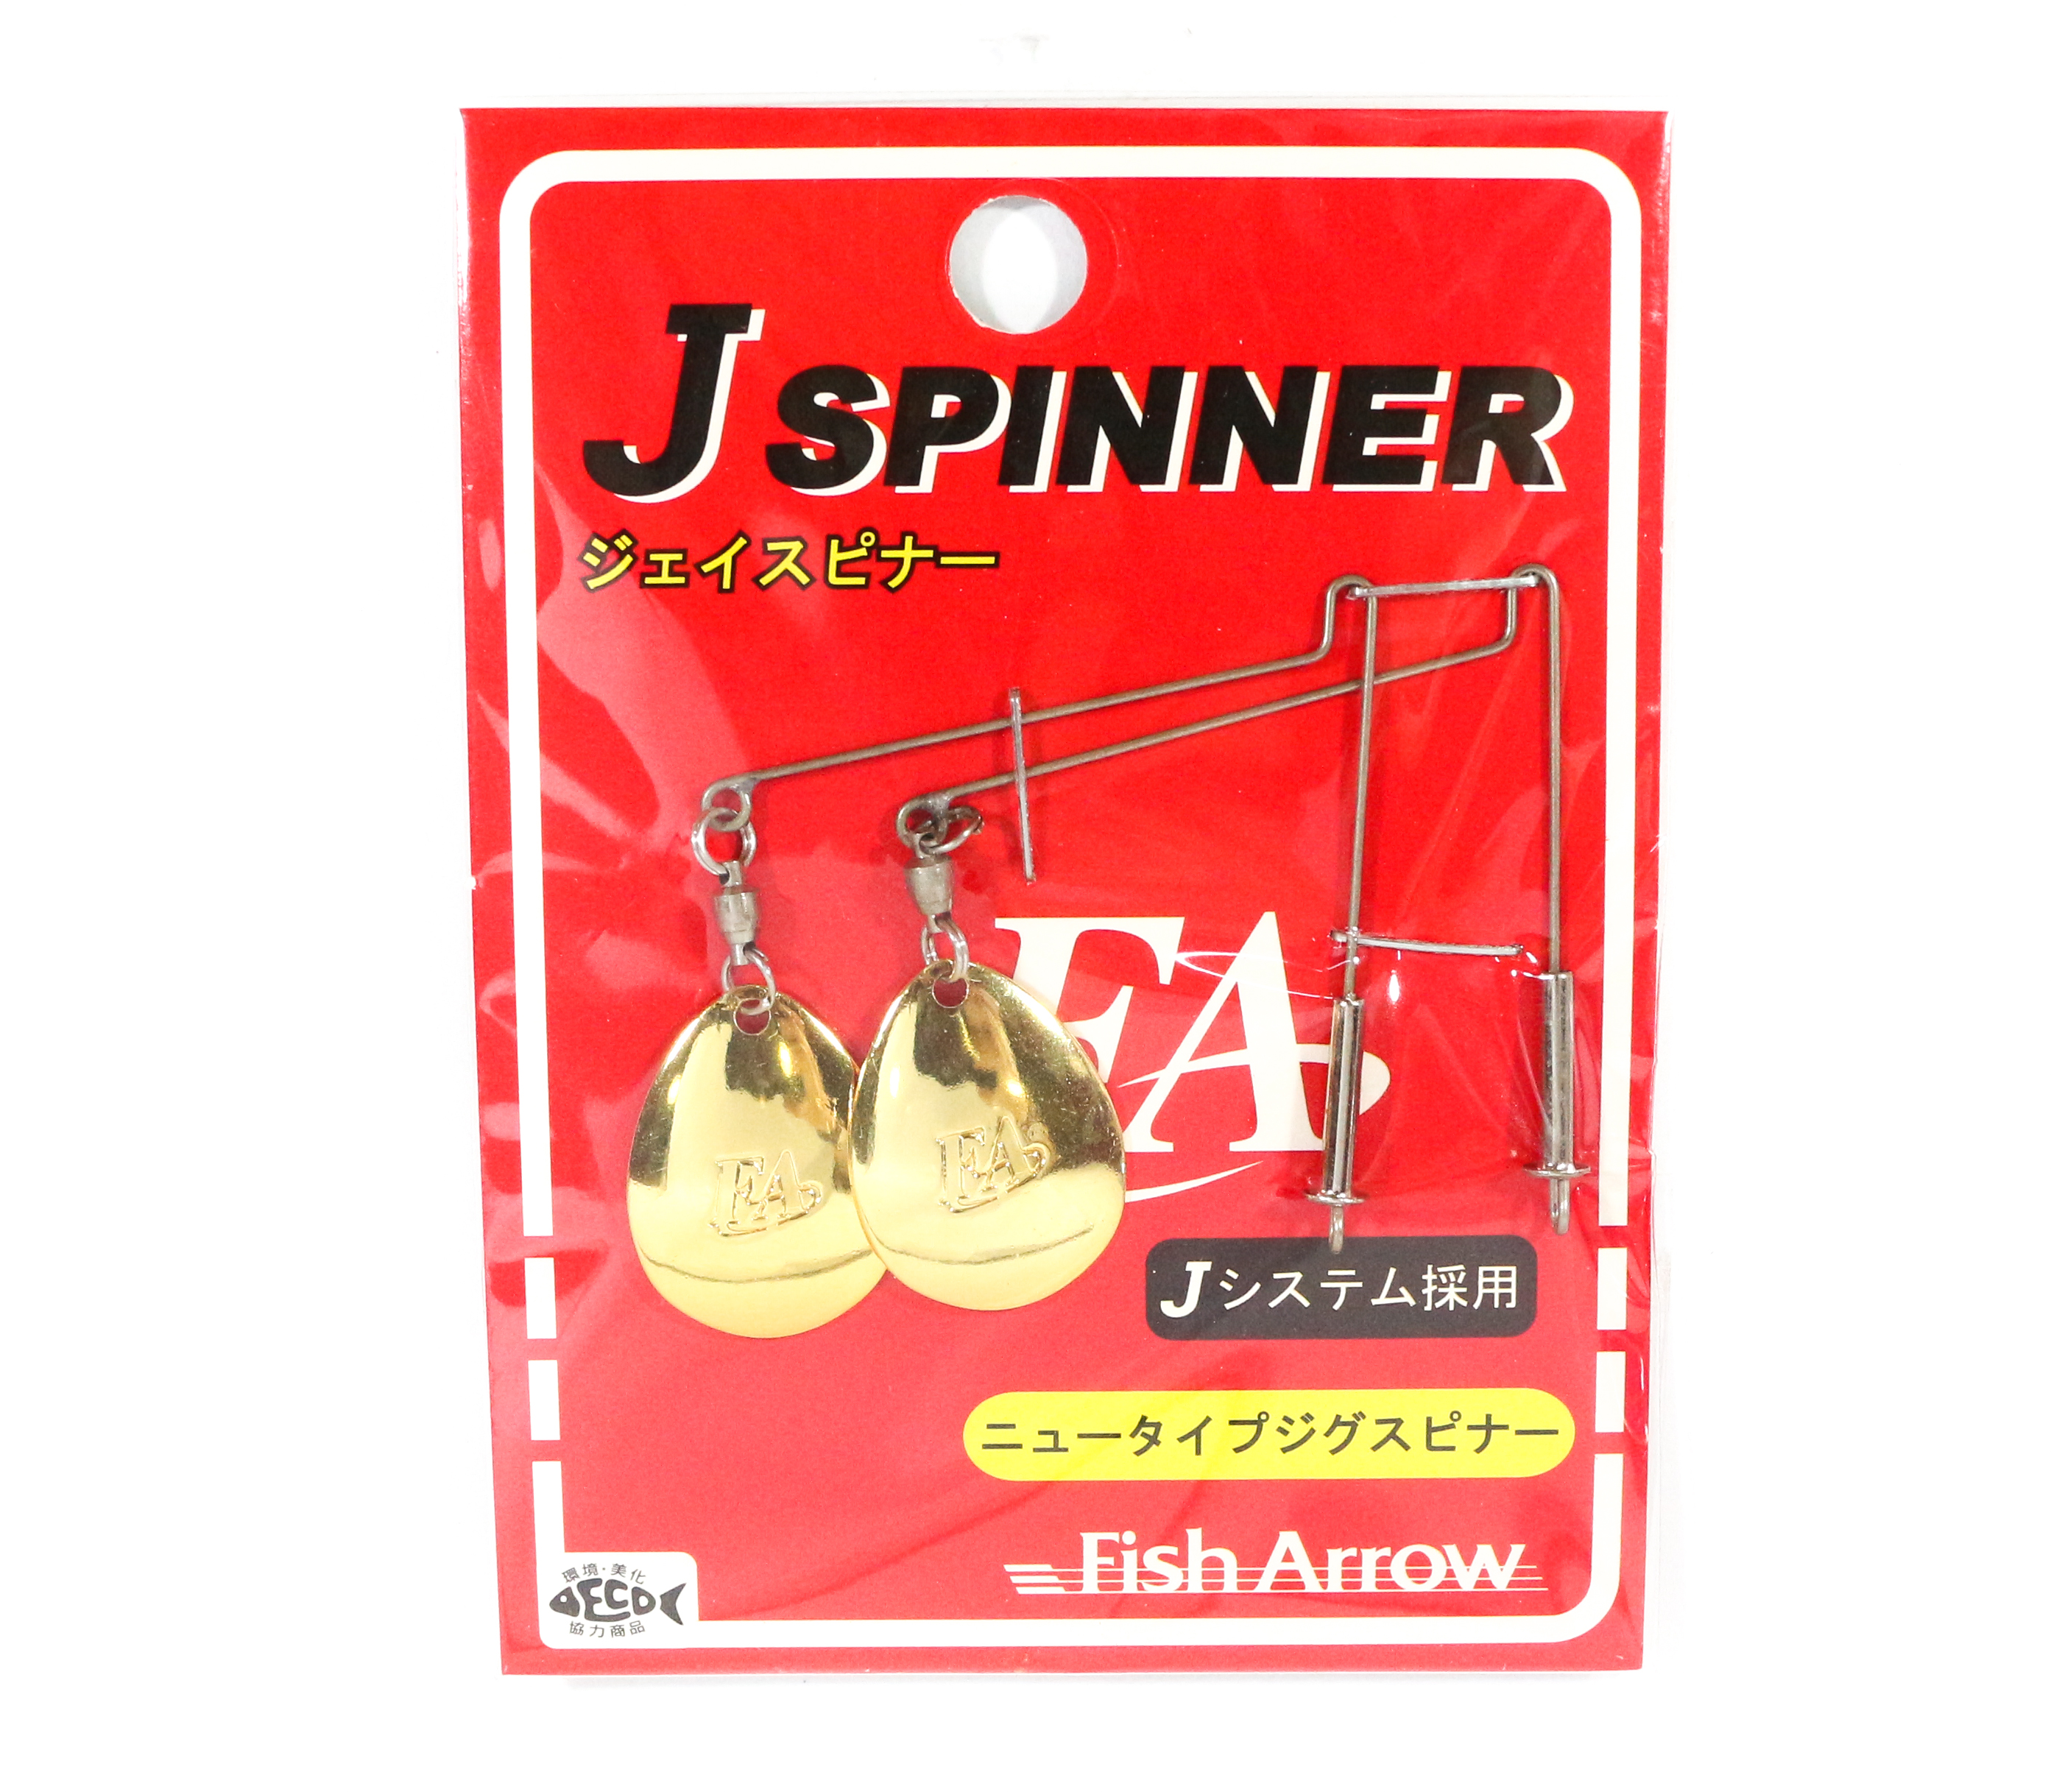 Fish Arrow J Spinner 22mm Colorado Blade 2 sets per pack Gold (5015)